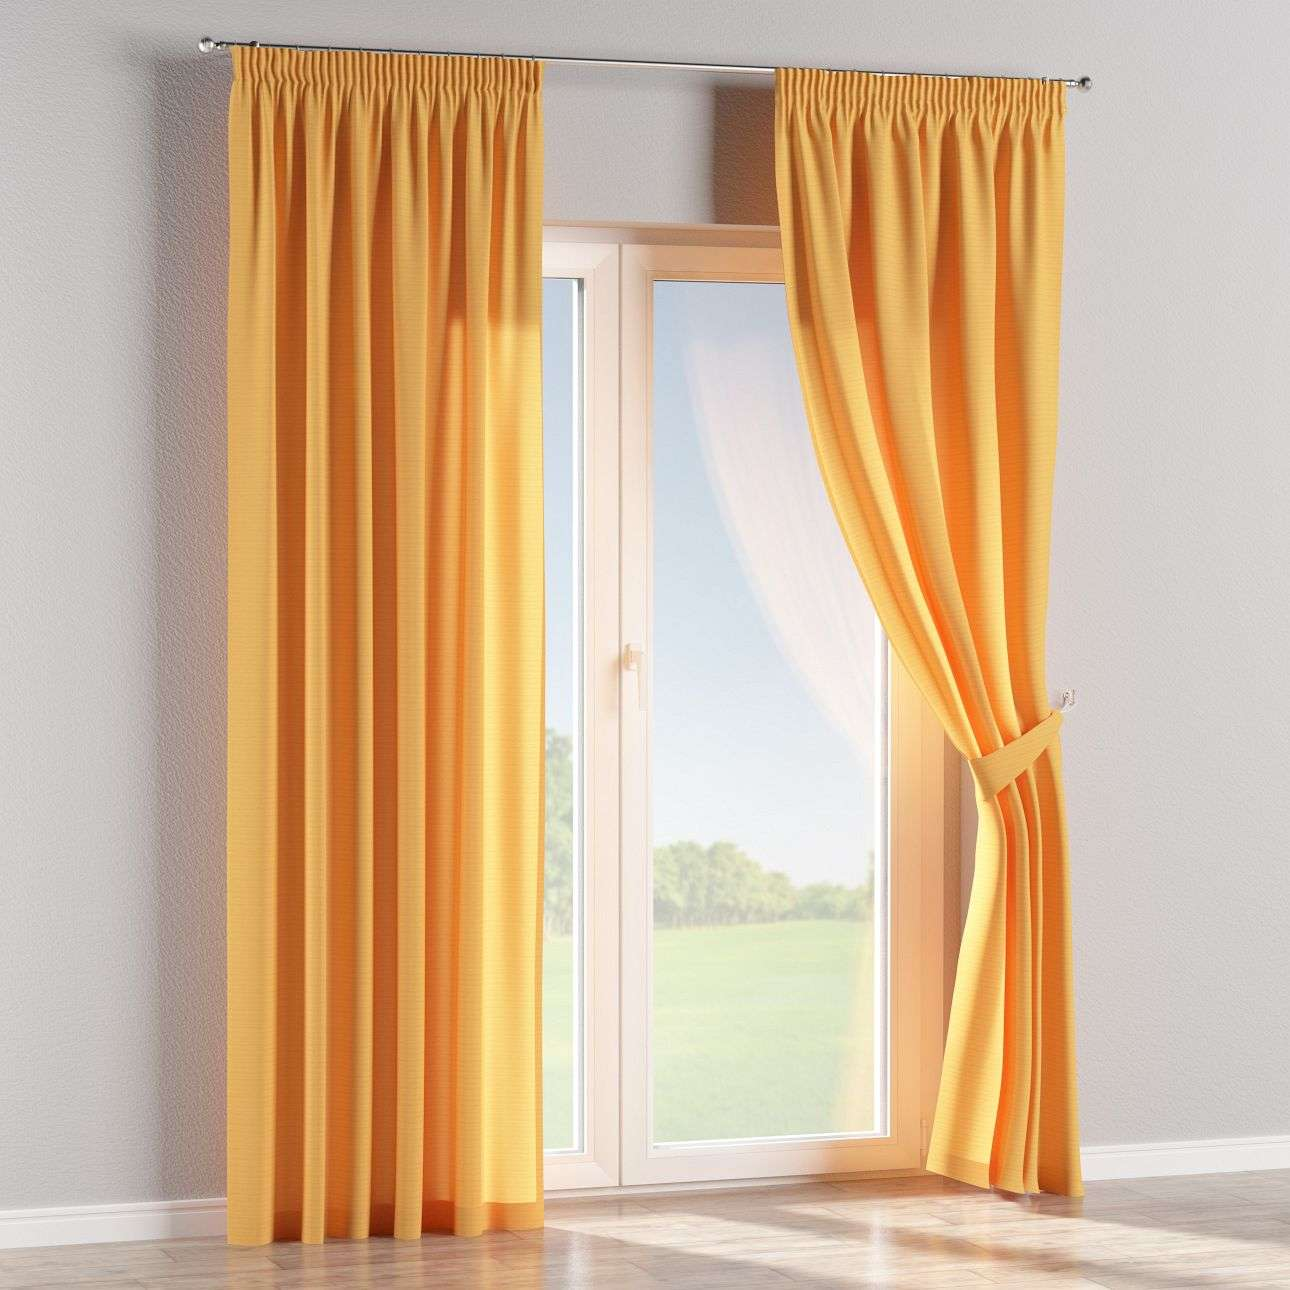 Pencil pleat curtains 130 x 260 cm (51 x 102 inch) in collection Jupiter, fabric: 127-46